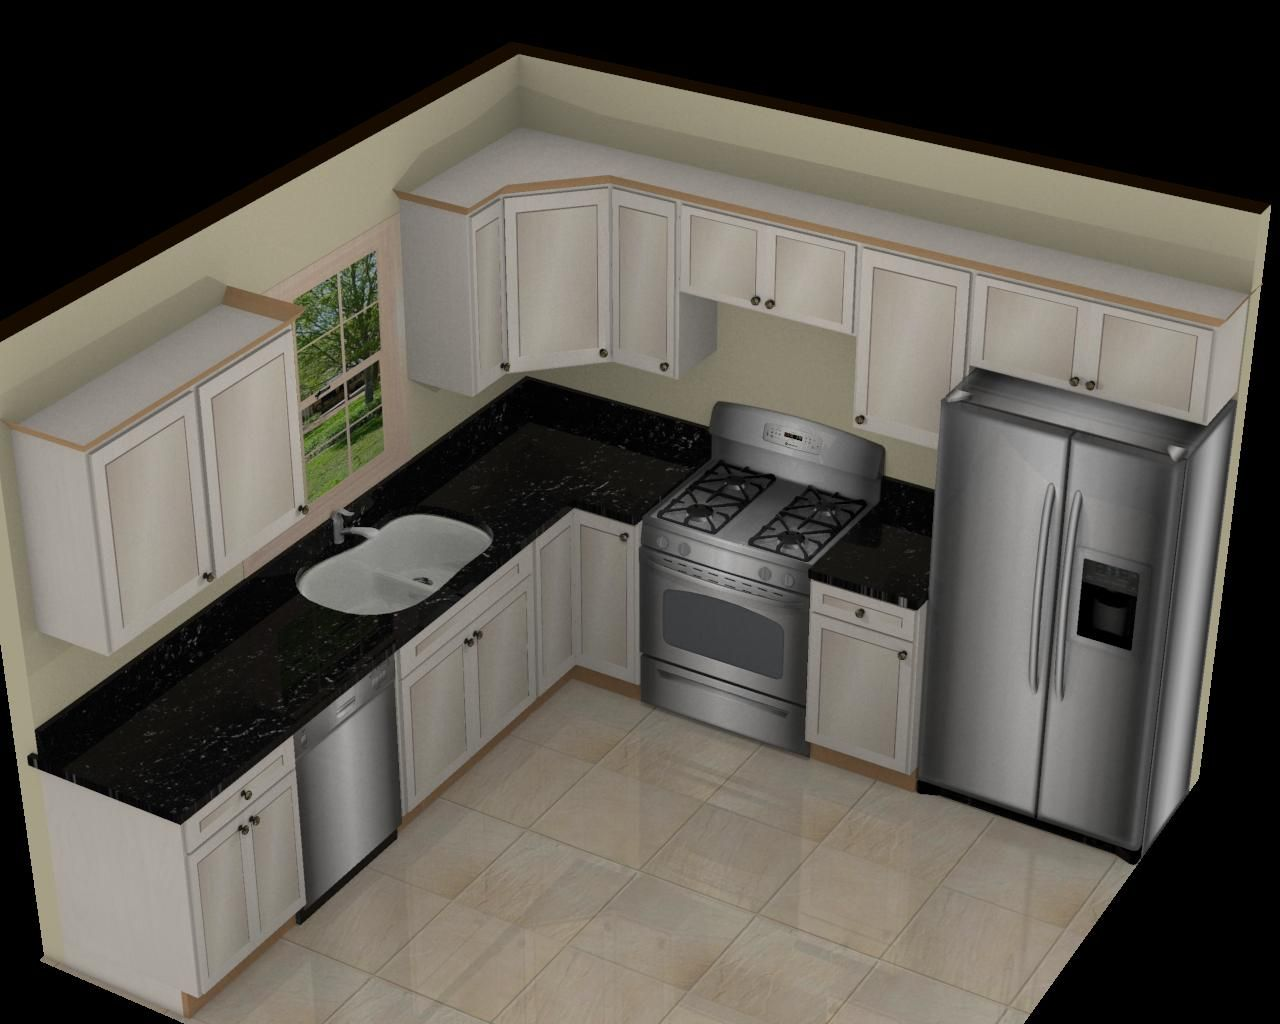 Kitchen Layout Narrow Design Ideas Html on narrow kitchen designs for kitchens, small kitchen ideas, narrow kitchen spaces, narrow u-shaped kitchen designs, narrow kitchen great room designs, narrow kitchen remodel, galley kitchen ideas, narrow kitchen plans,